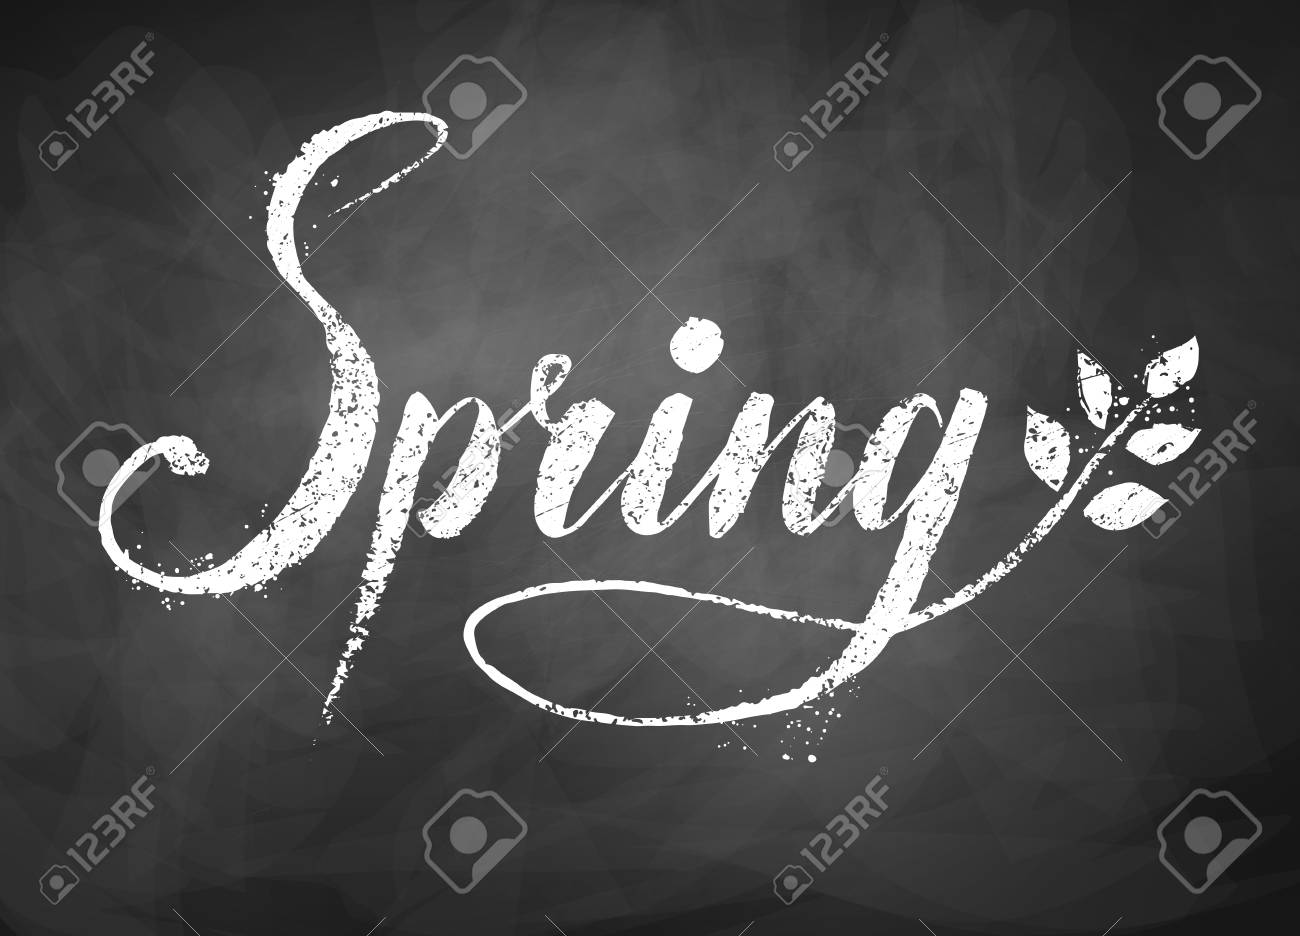 Spring Word Grunge Chalked Lettering On Black Chalkboard Background With Tree Branch And Leaves Stock